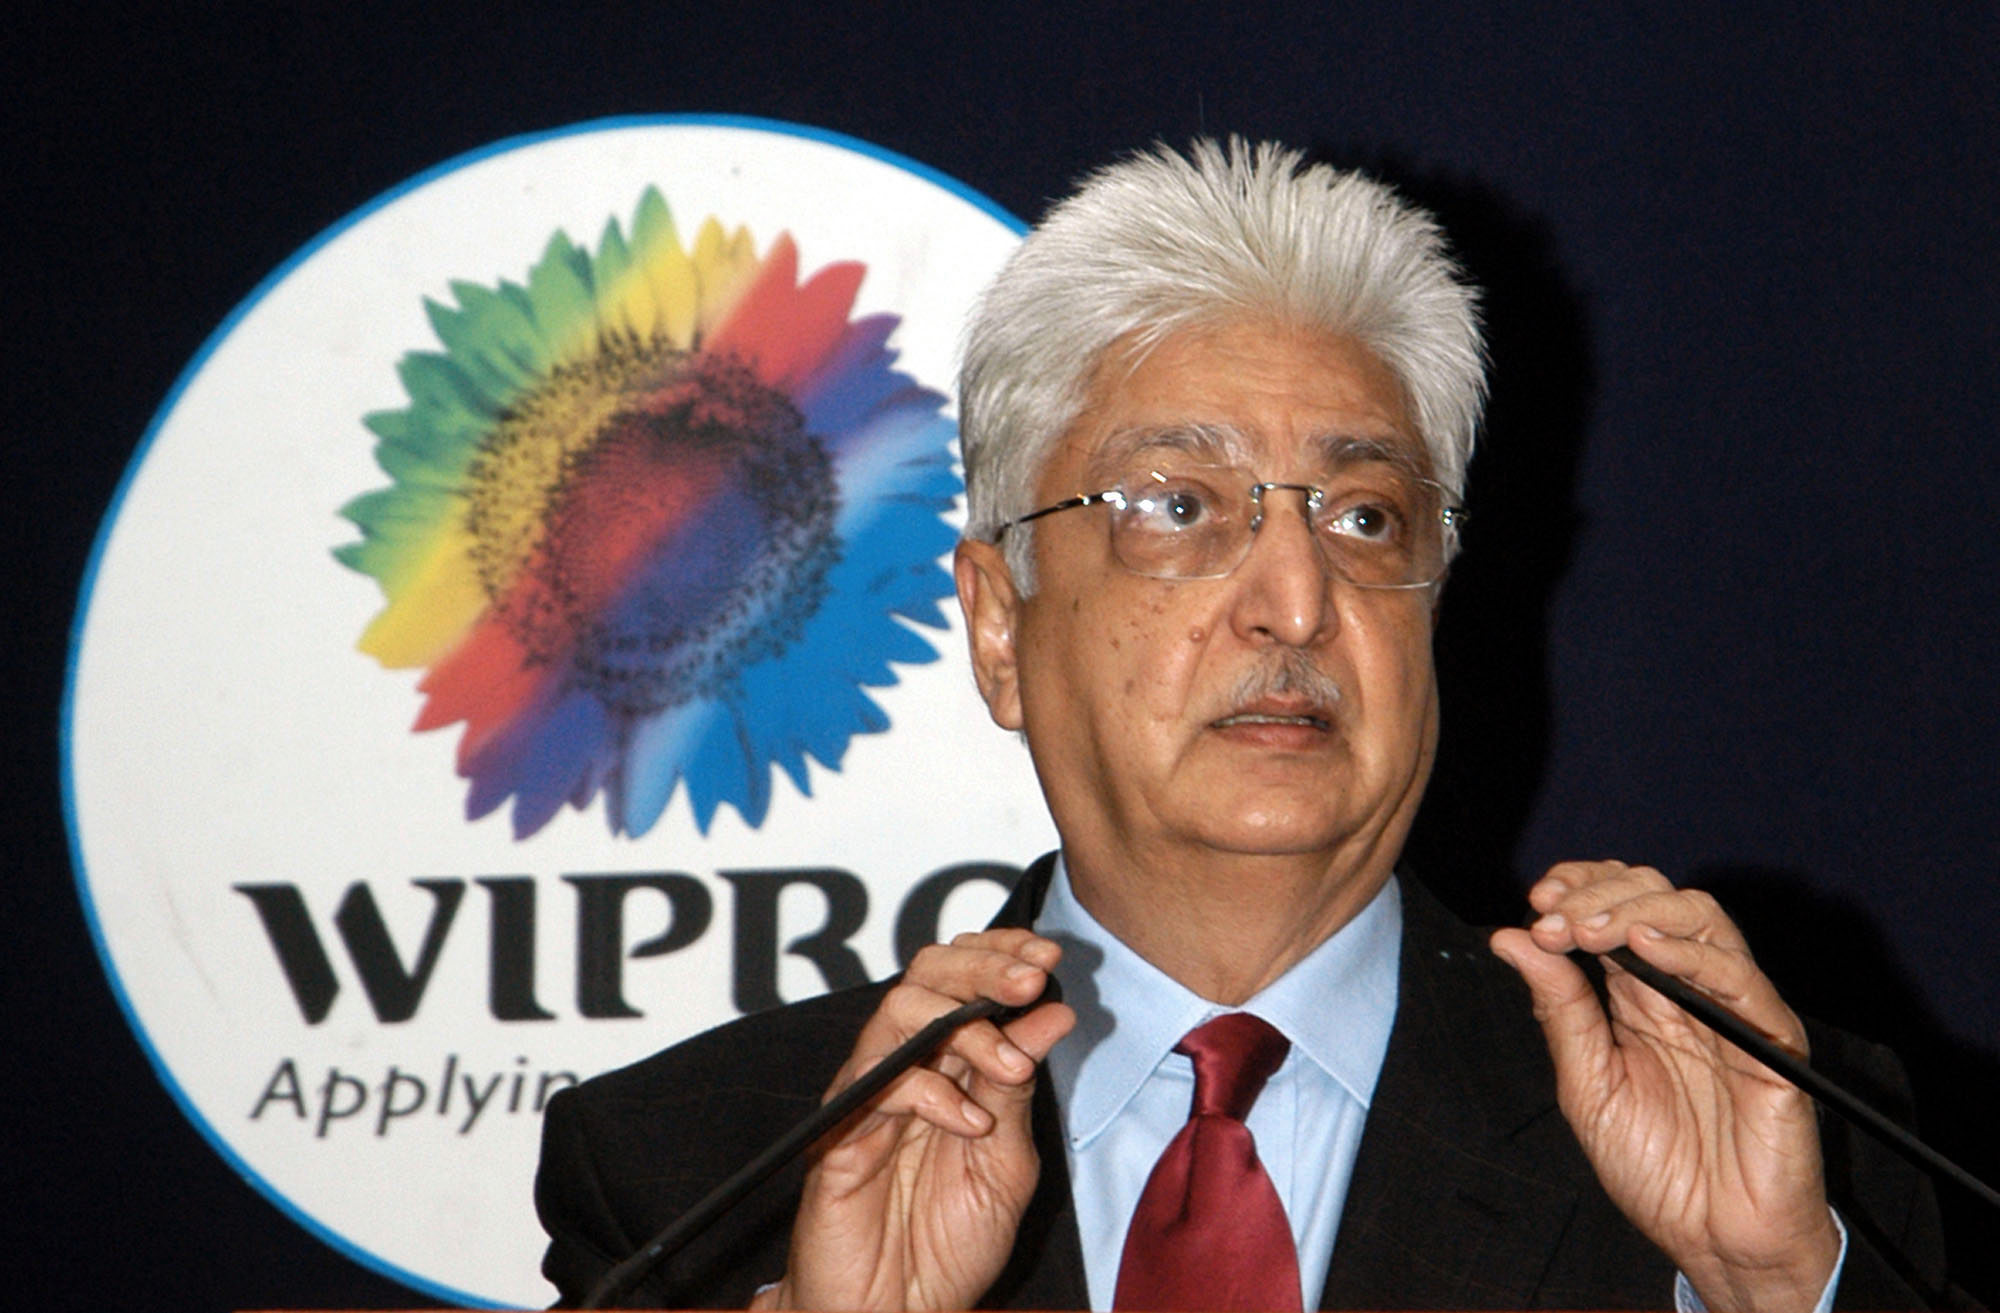 Wipro buys minority stake in cloud solutions firm Drivestream for $5M